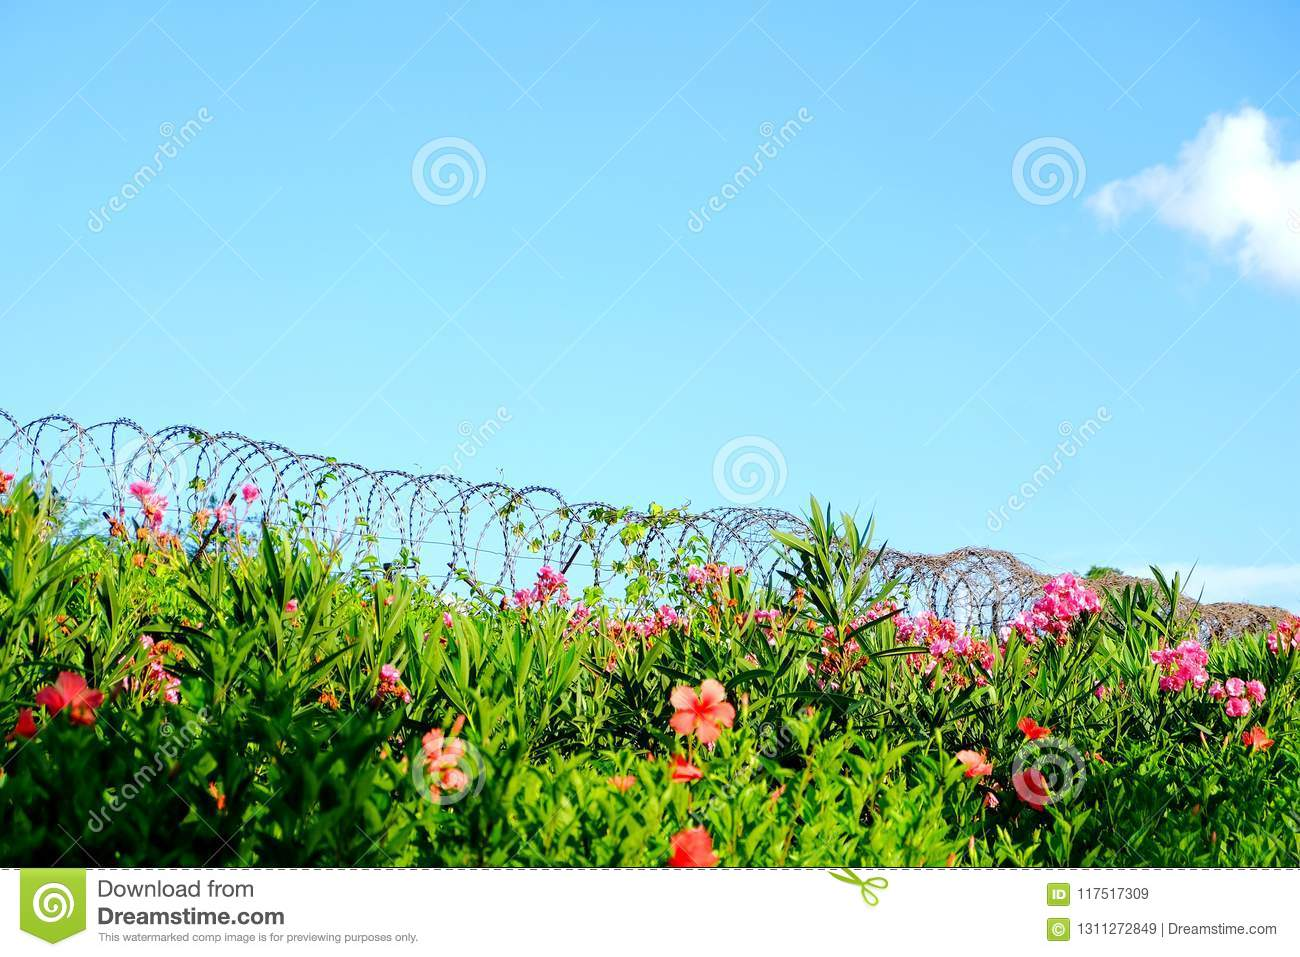 Barbed wire fence stock image. Image of wire, piles - 117517309